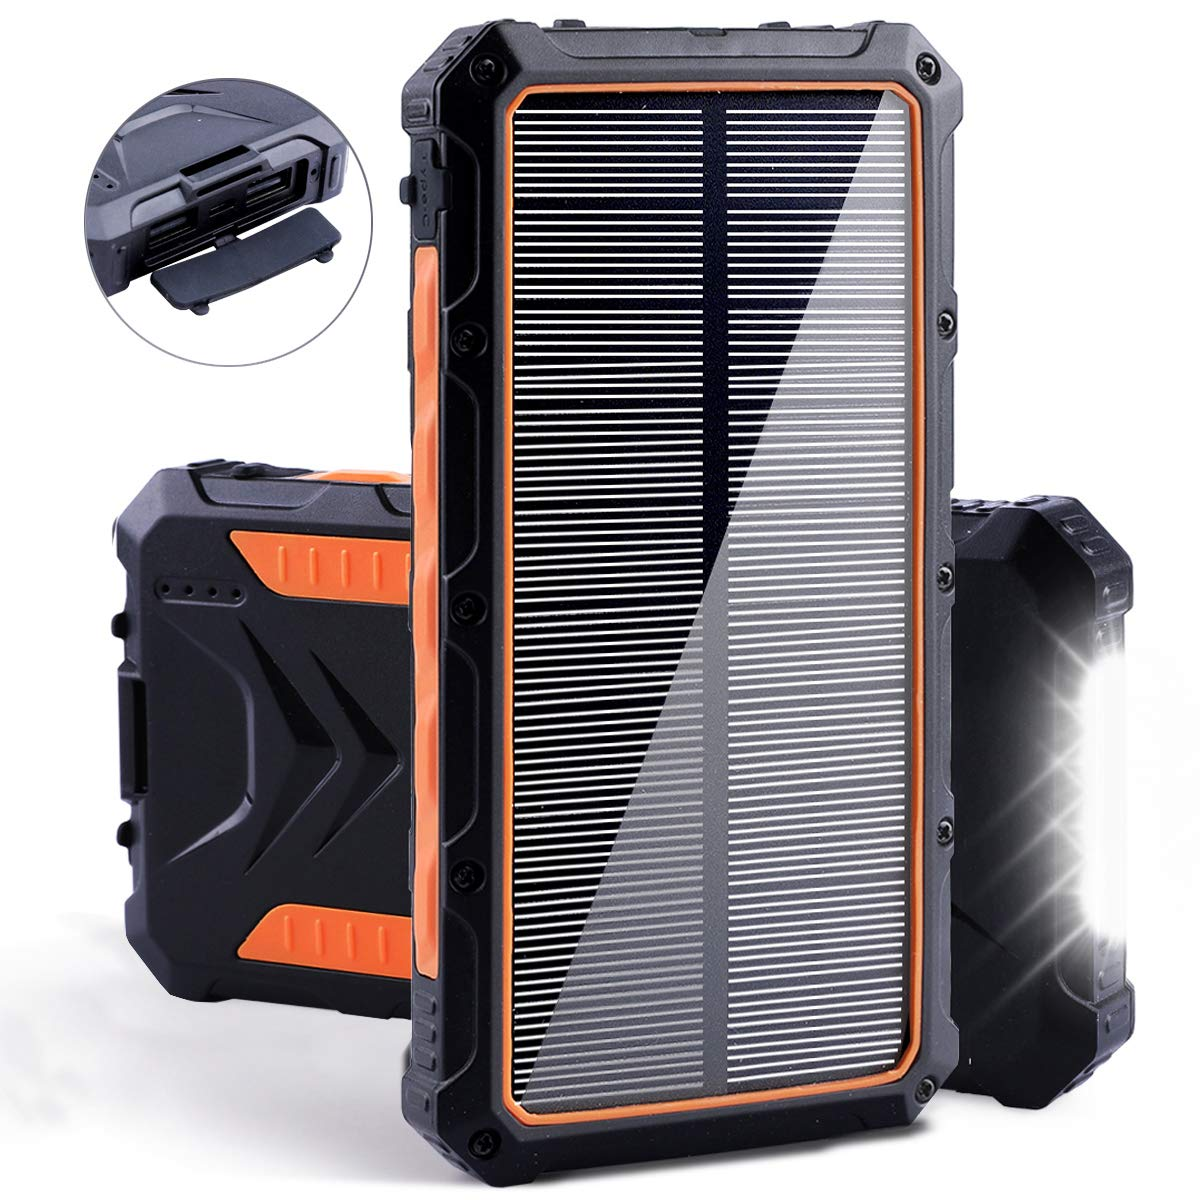 Solar Power Bank, Benfiss 20000mAh Portable Solar Charger with Dual USB 3.0A Output Port/LED Light/Type-C and External Battery Pack, Solar Phone Charger Fast Charging for Smartphone and More (Orange) by Benfiss